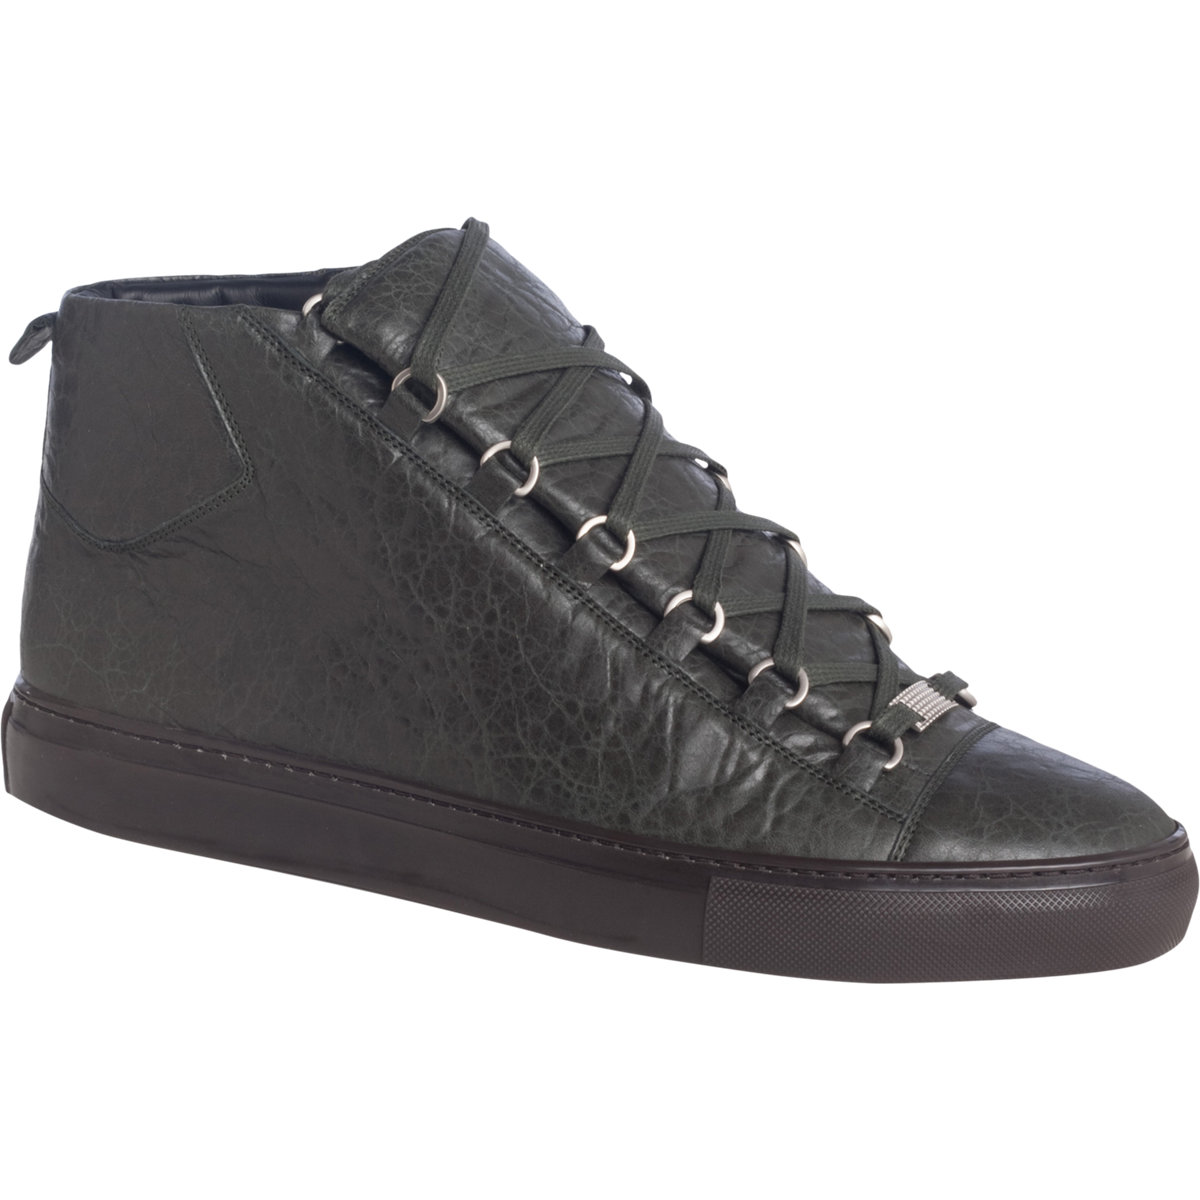 best service d38d2 f0cea Balenciaga Arena High Trainers in Gray for Men - Lyst